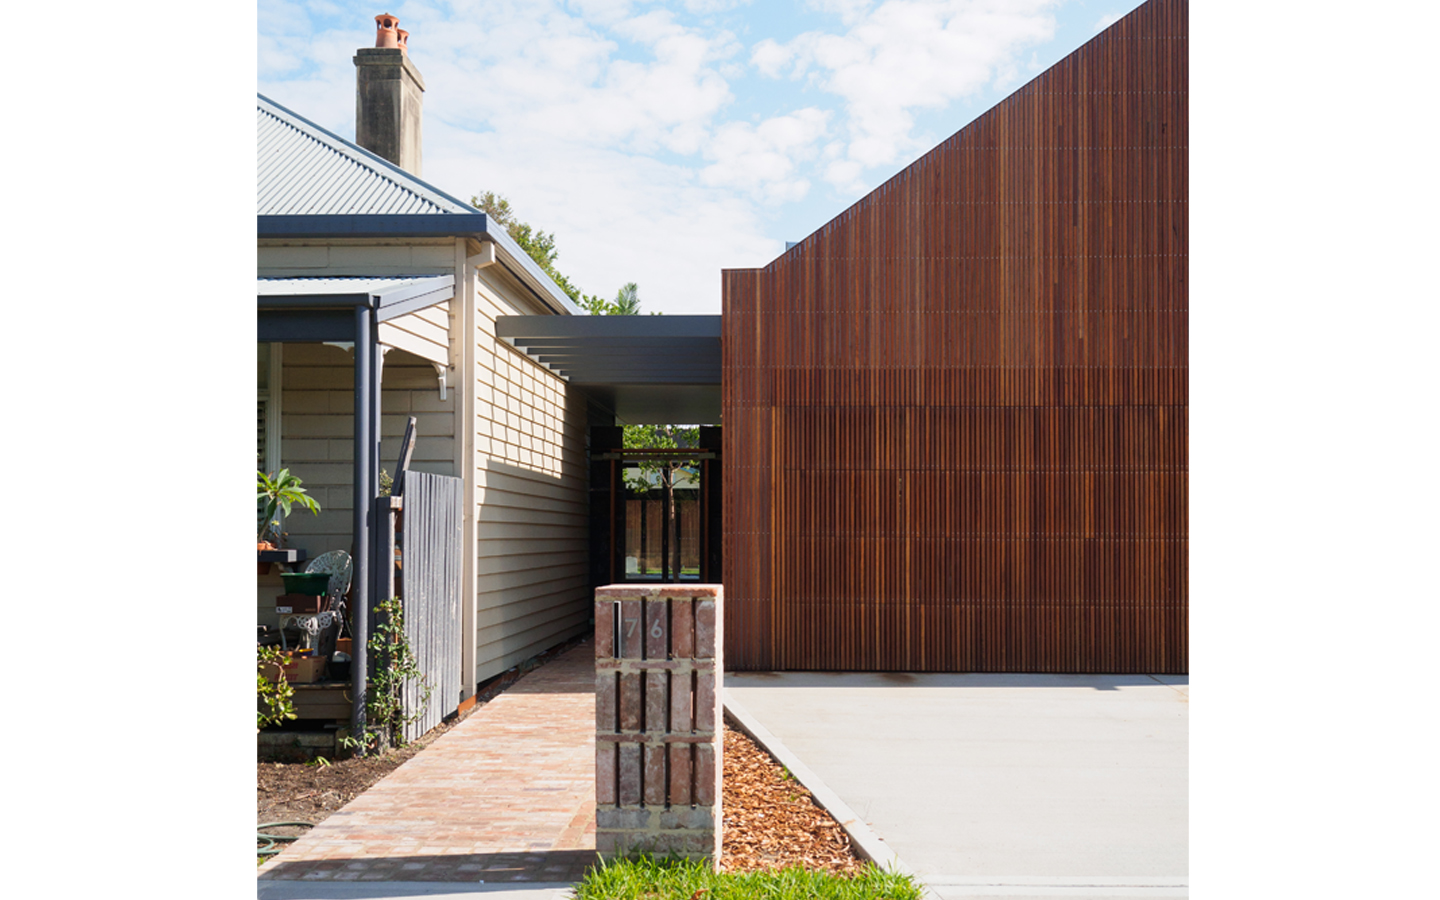 Image Of The Entry To A Home With Address Located At The Interface Of The Existing Building And. The New Alterations.